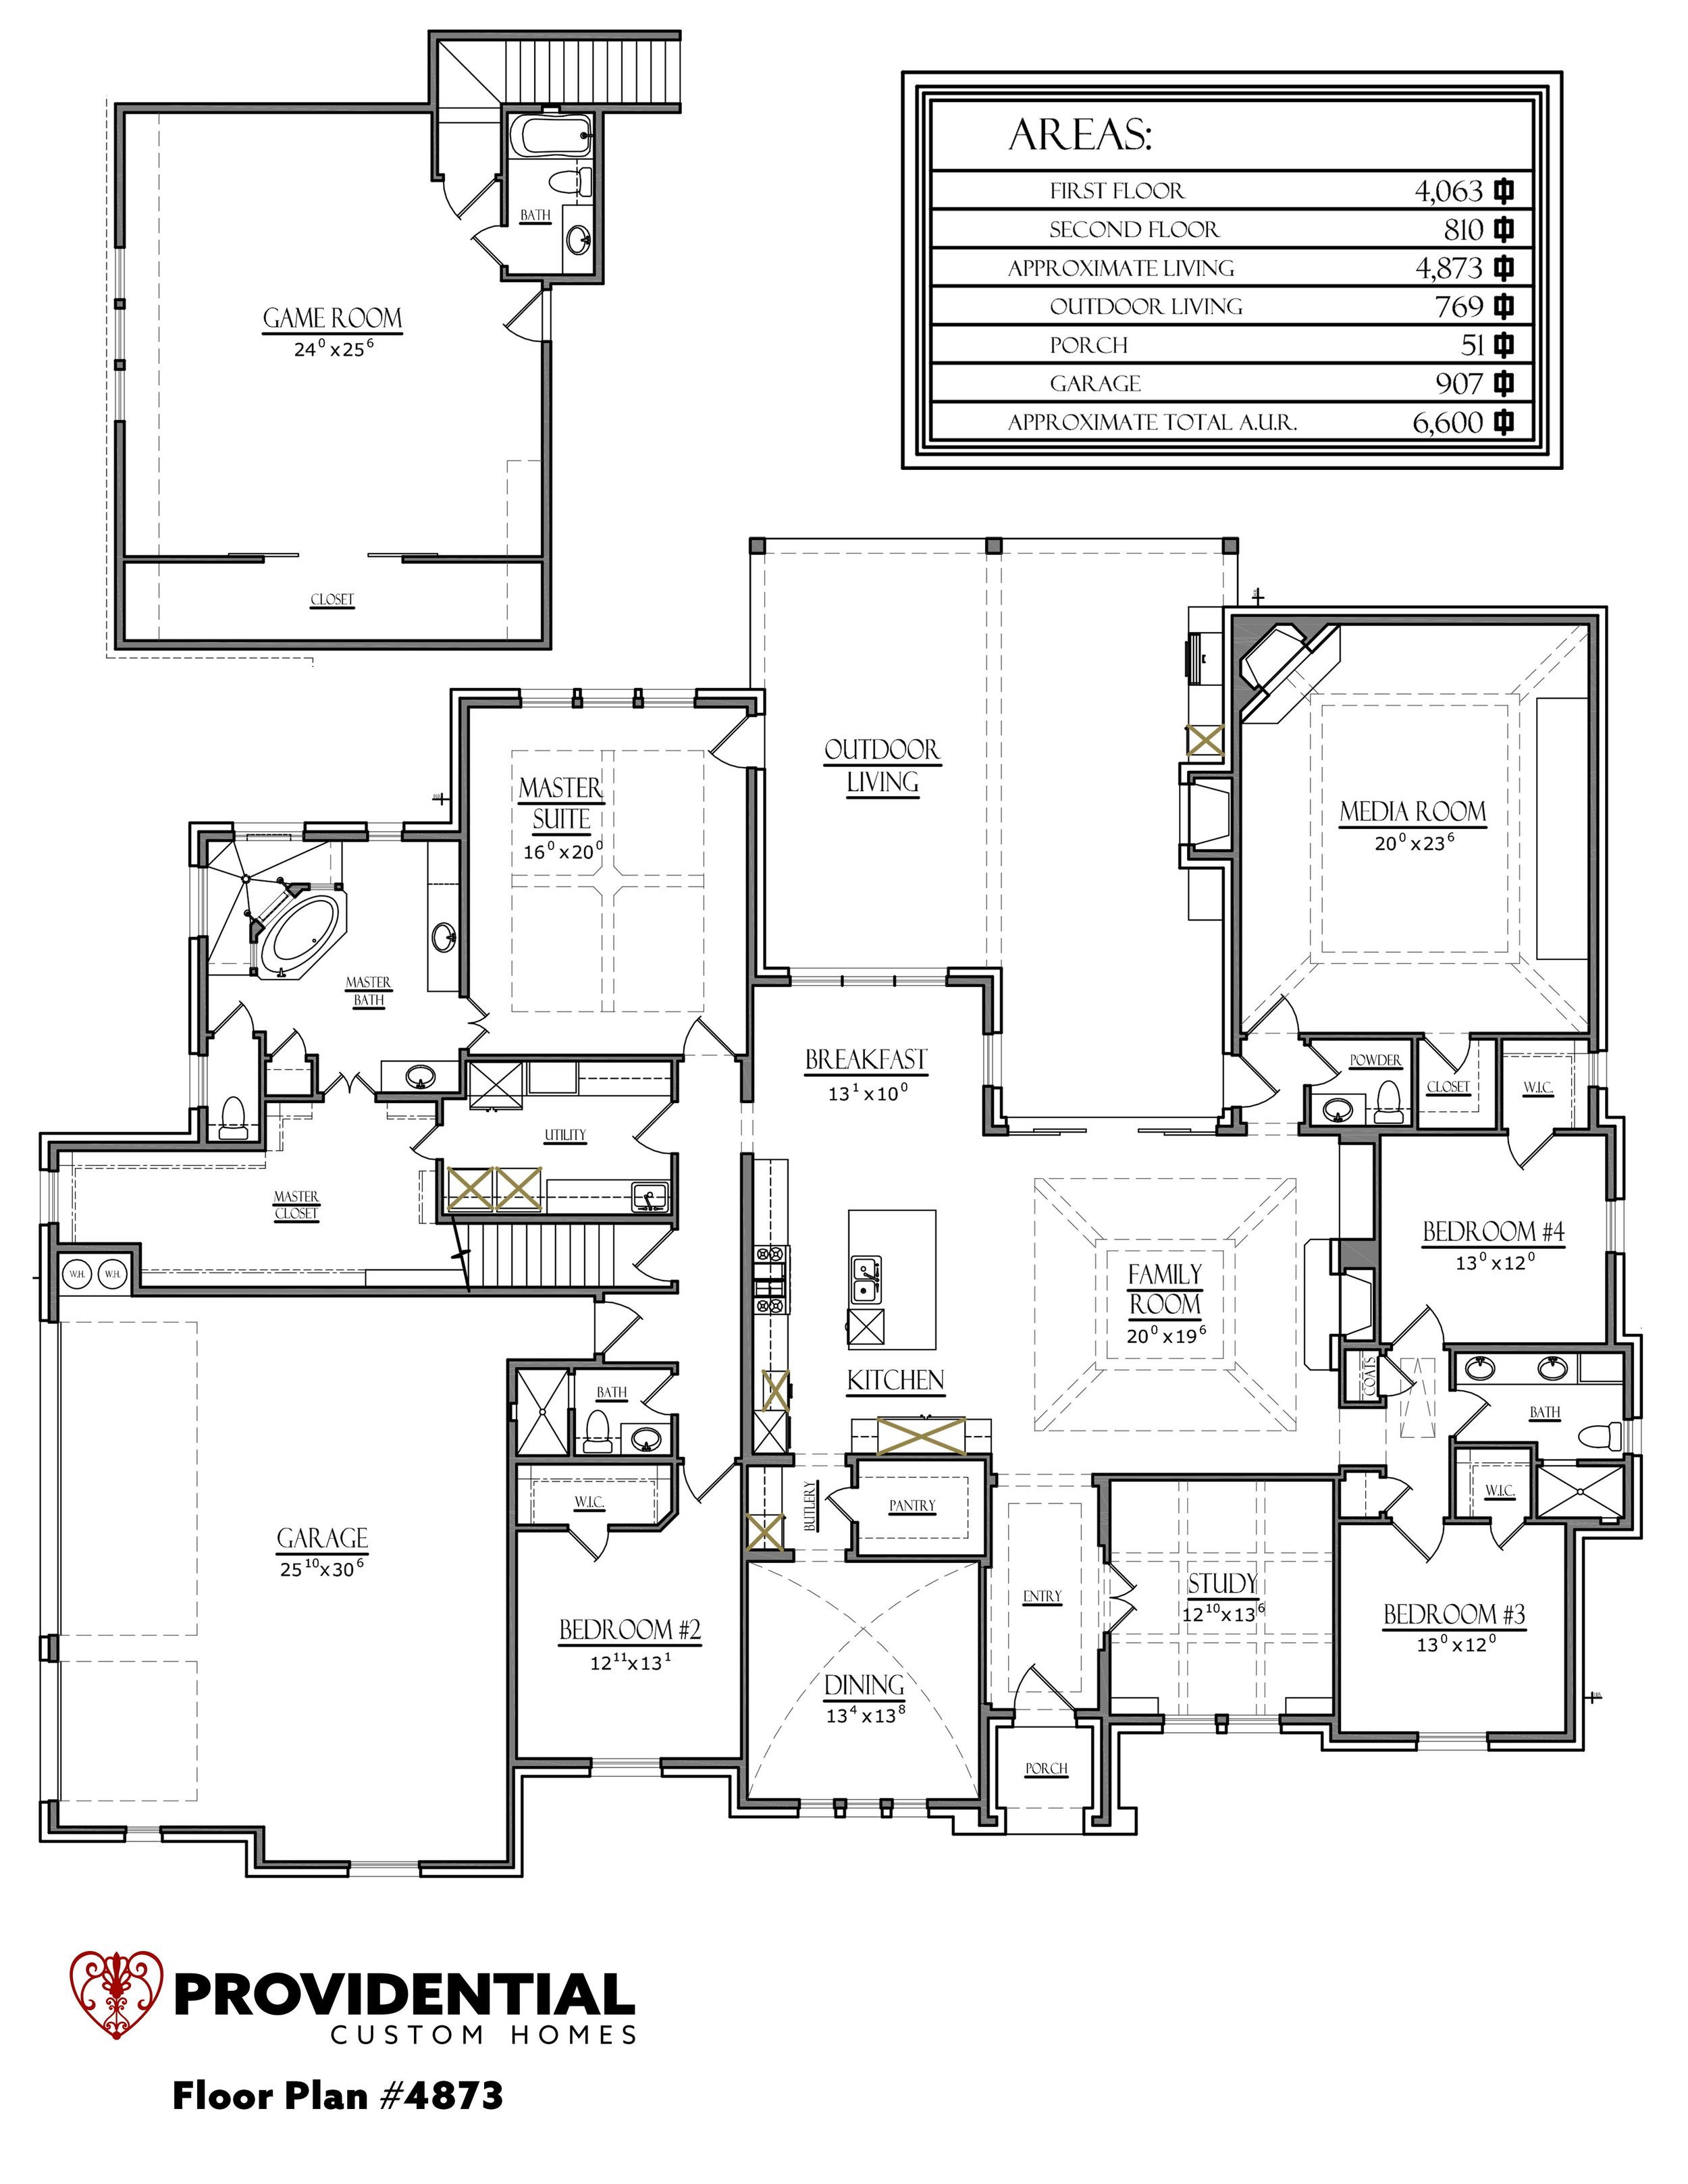 The FLOOR PLAN #4873.jpg